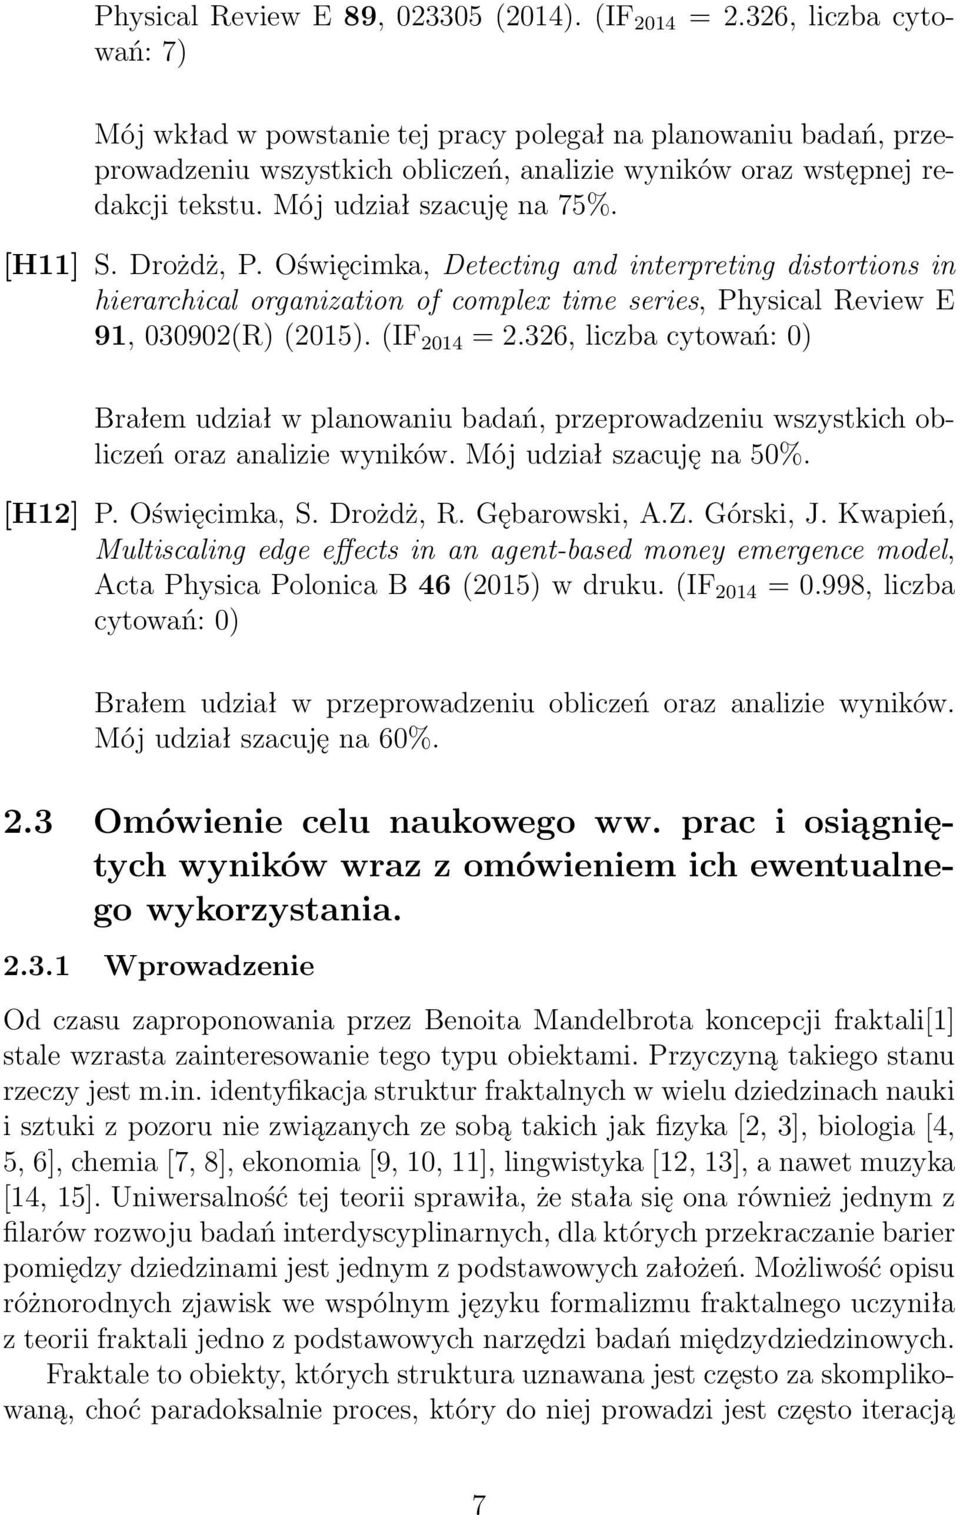 [H11] S. Drożdż, P. Oświęcimka, Detecting and interpreting distortions in hierarchical organization of complex time series, Physical Review E 91, 030902(R) (2015). (IF 2014 = 2.